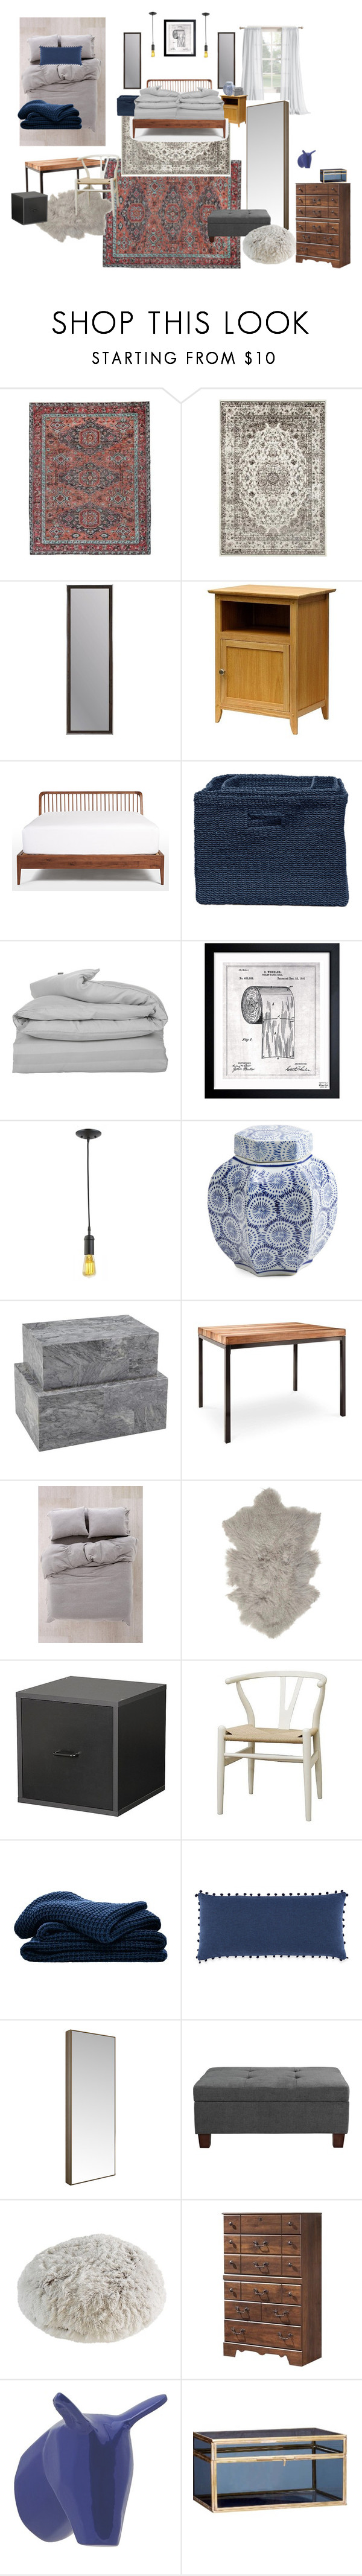 Threshold home decor shop for threshold home decor on polyvore - By Annieeeeeeee On Polyvore Featuring Interior Interiors